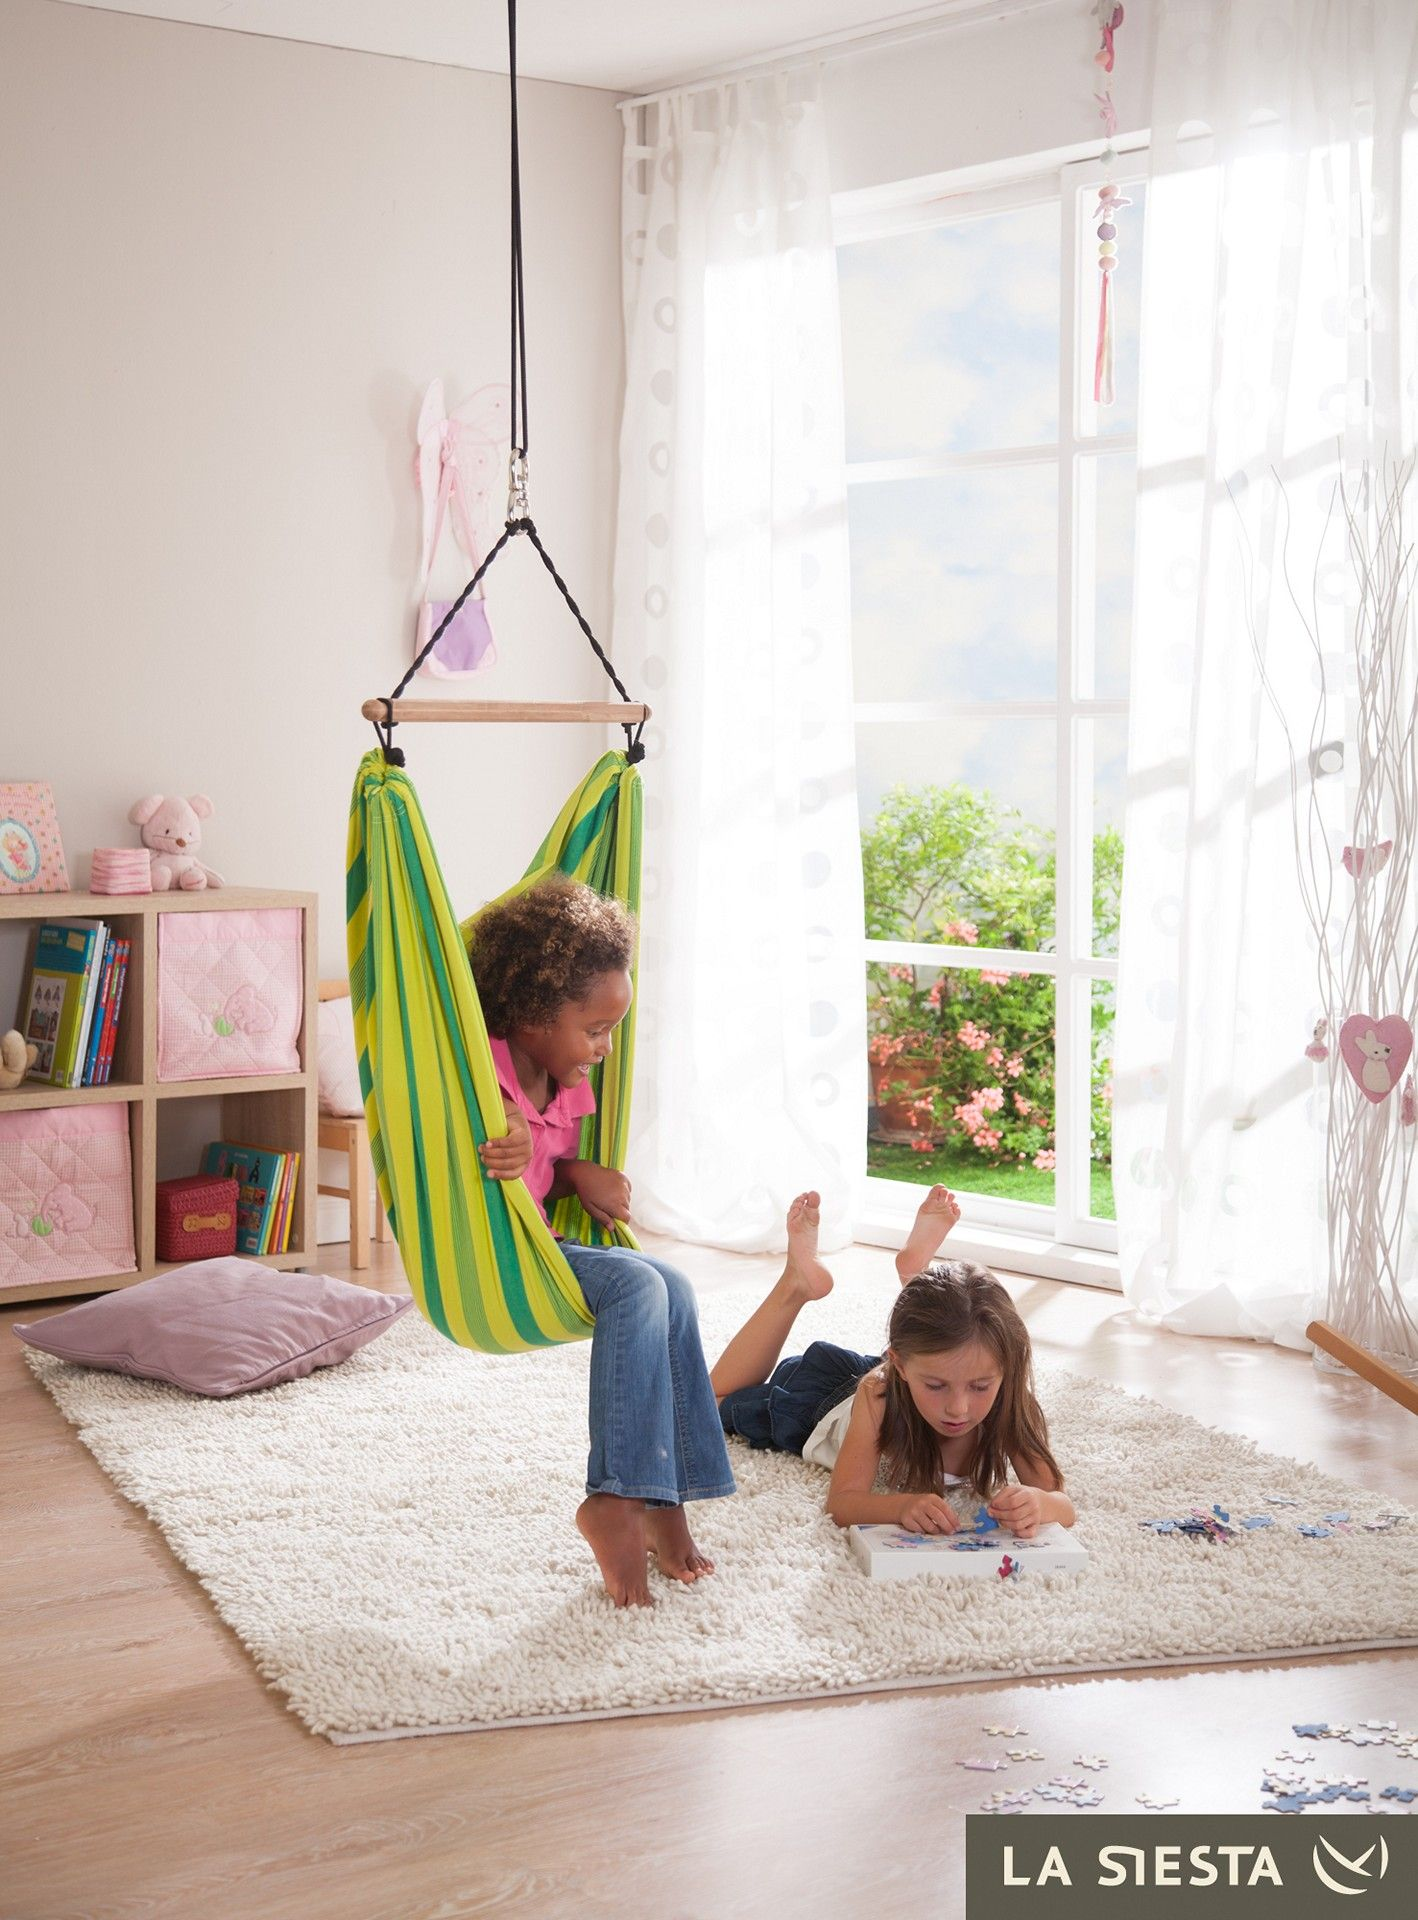 Hanging Chair For Bedroom Prepossessing Cool Hanging Chairs For Bedrooms Chair Bedroom Bangalore The Decorating Inspiration